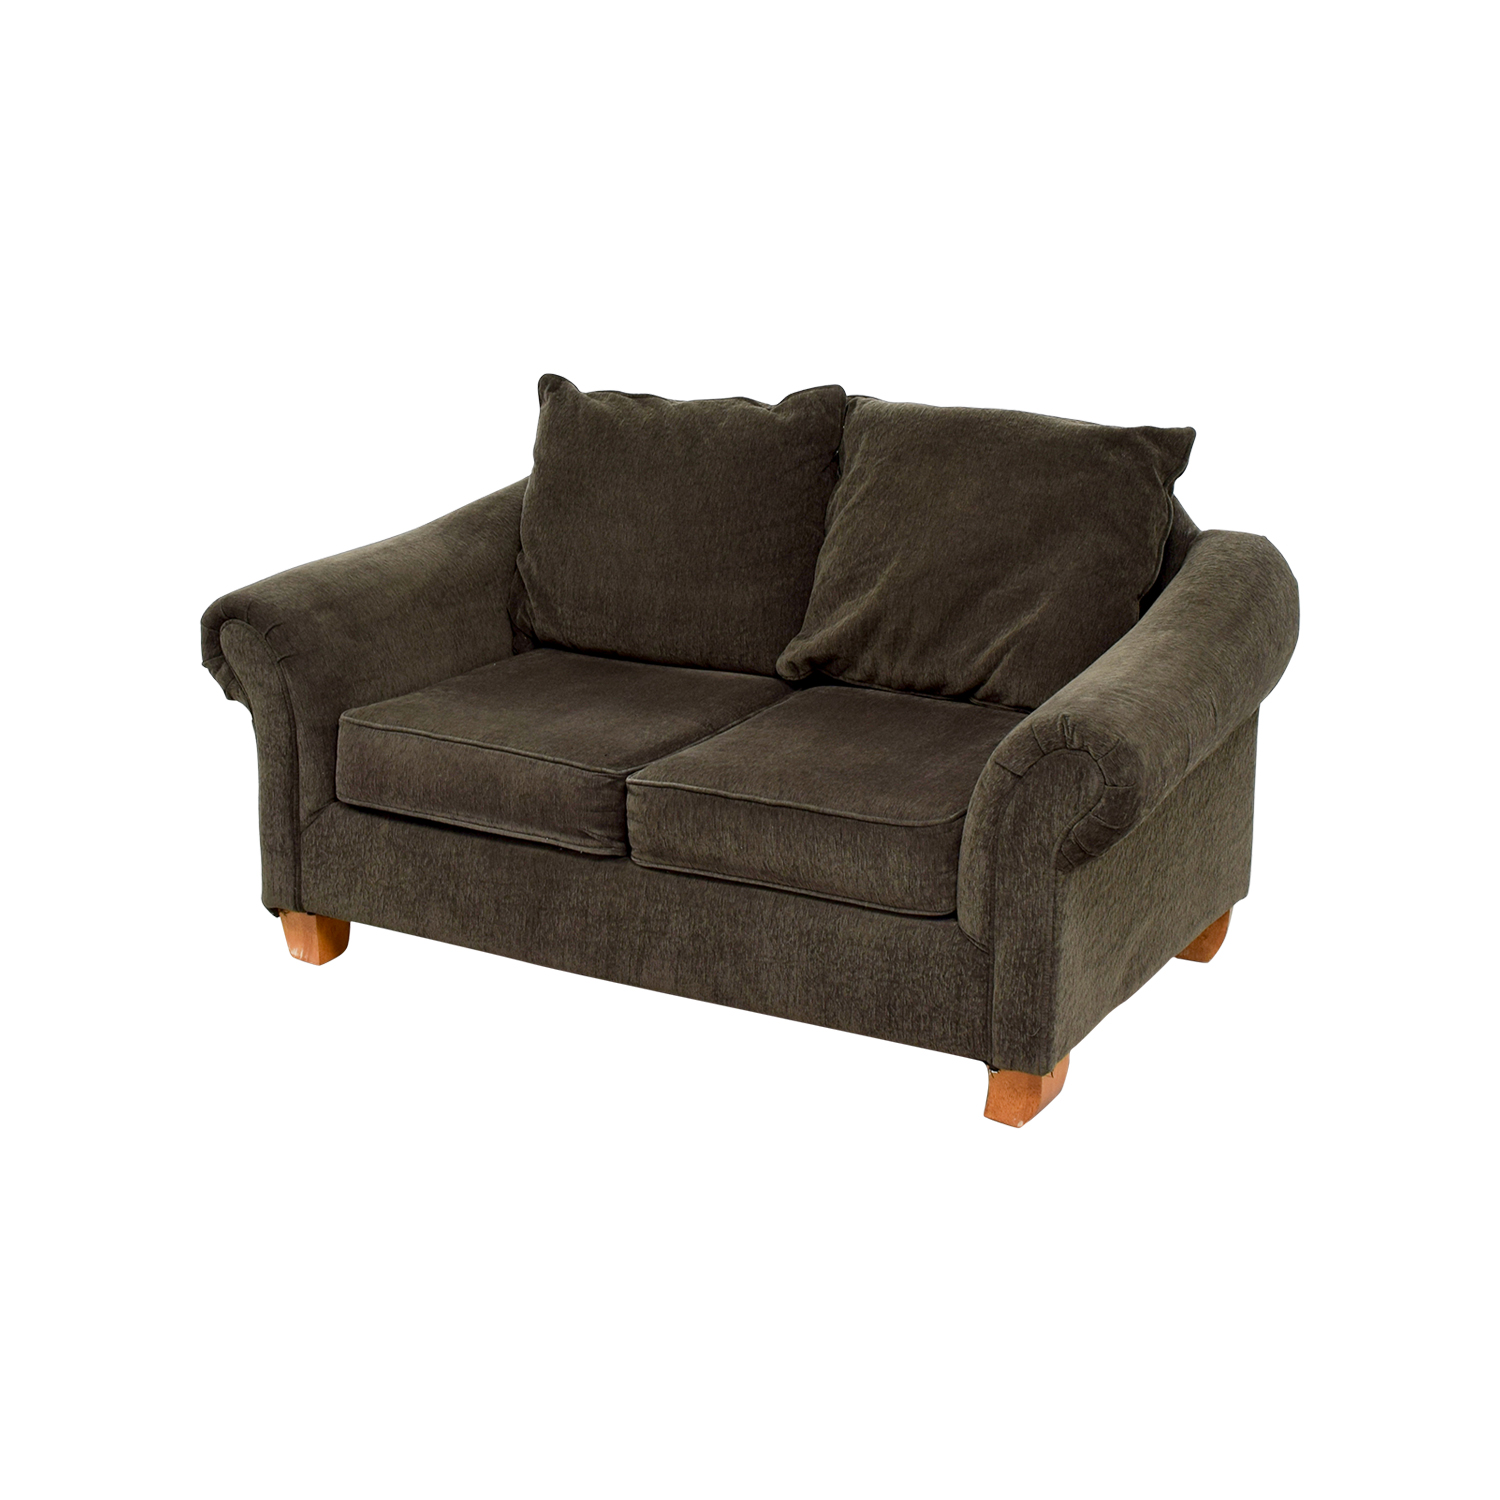 star furniture sofas ashley hodan microfiber sofa chaise 40 off brown curved arms